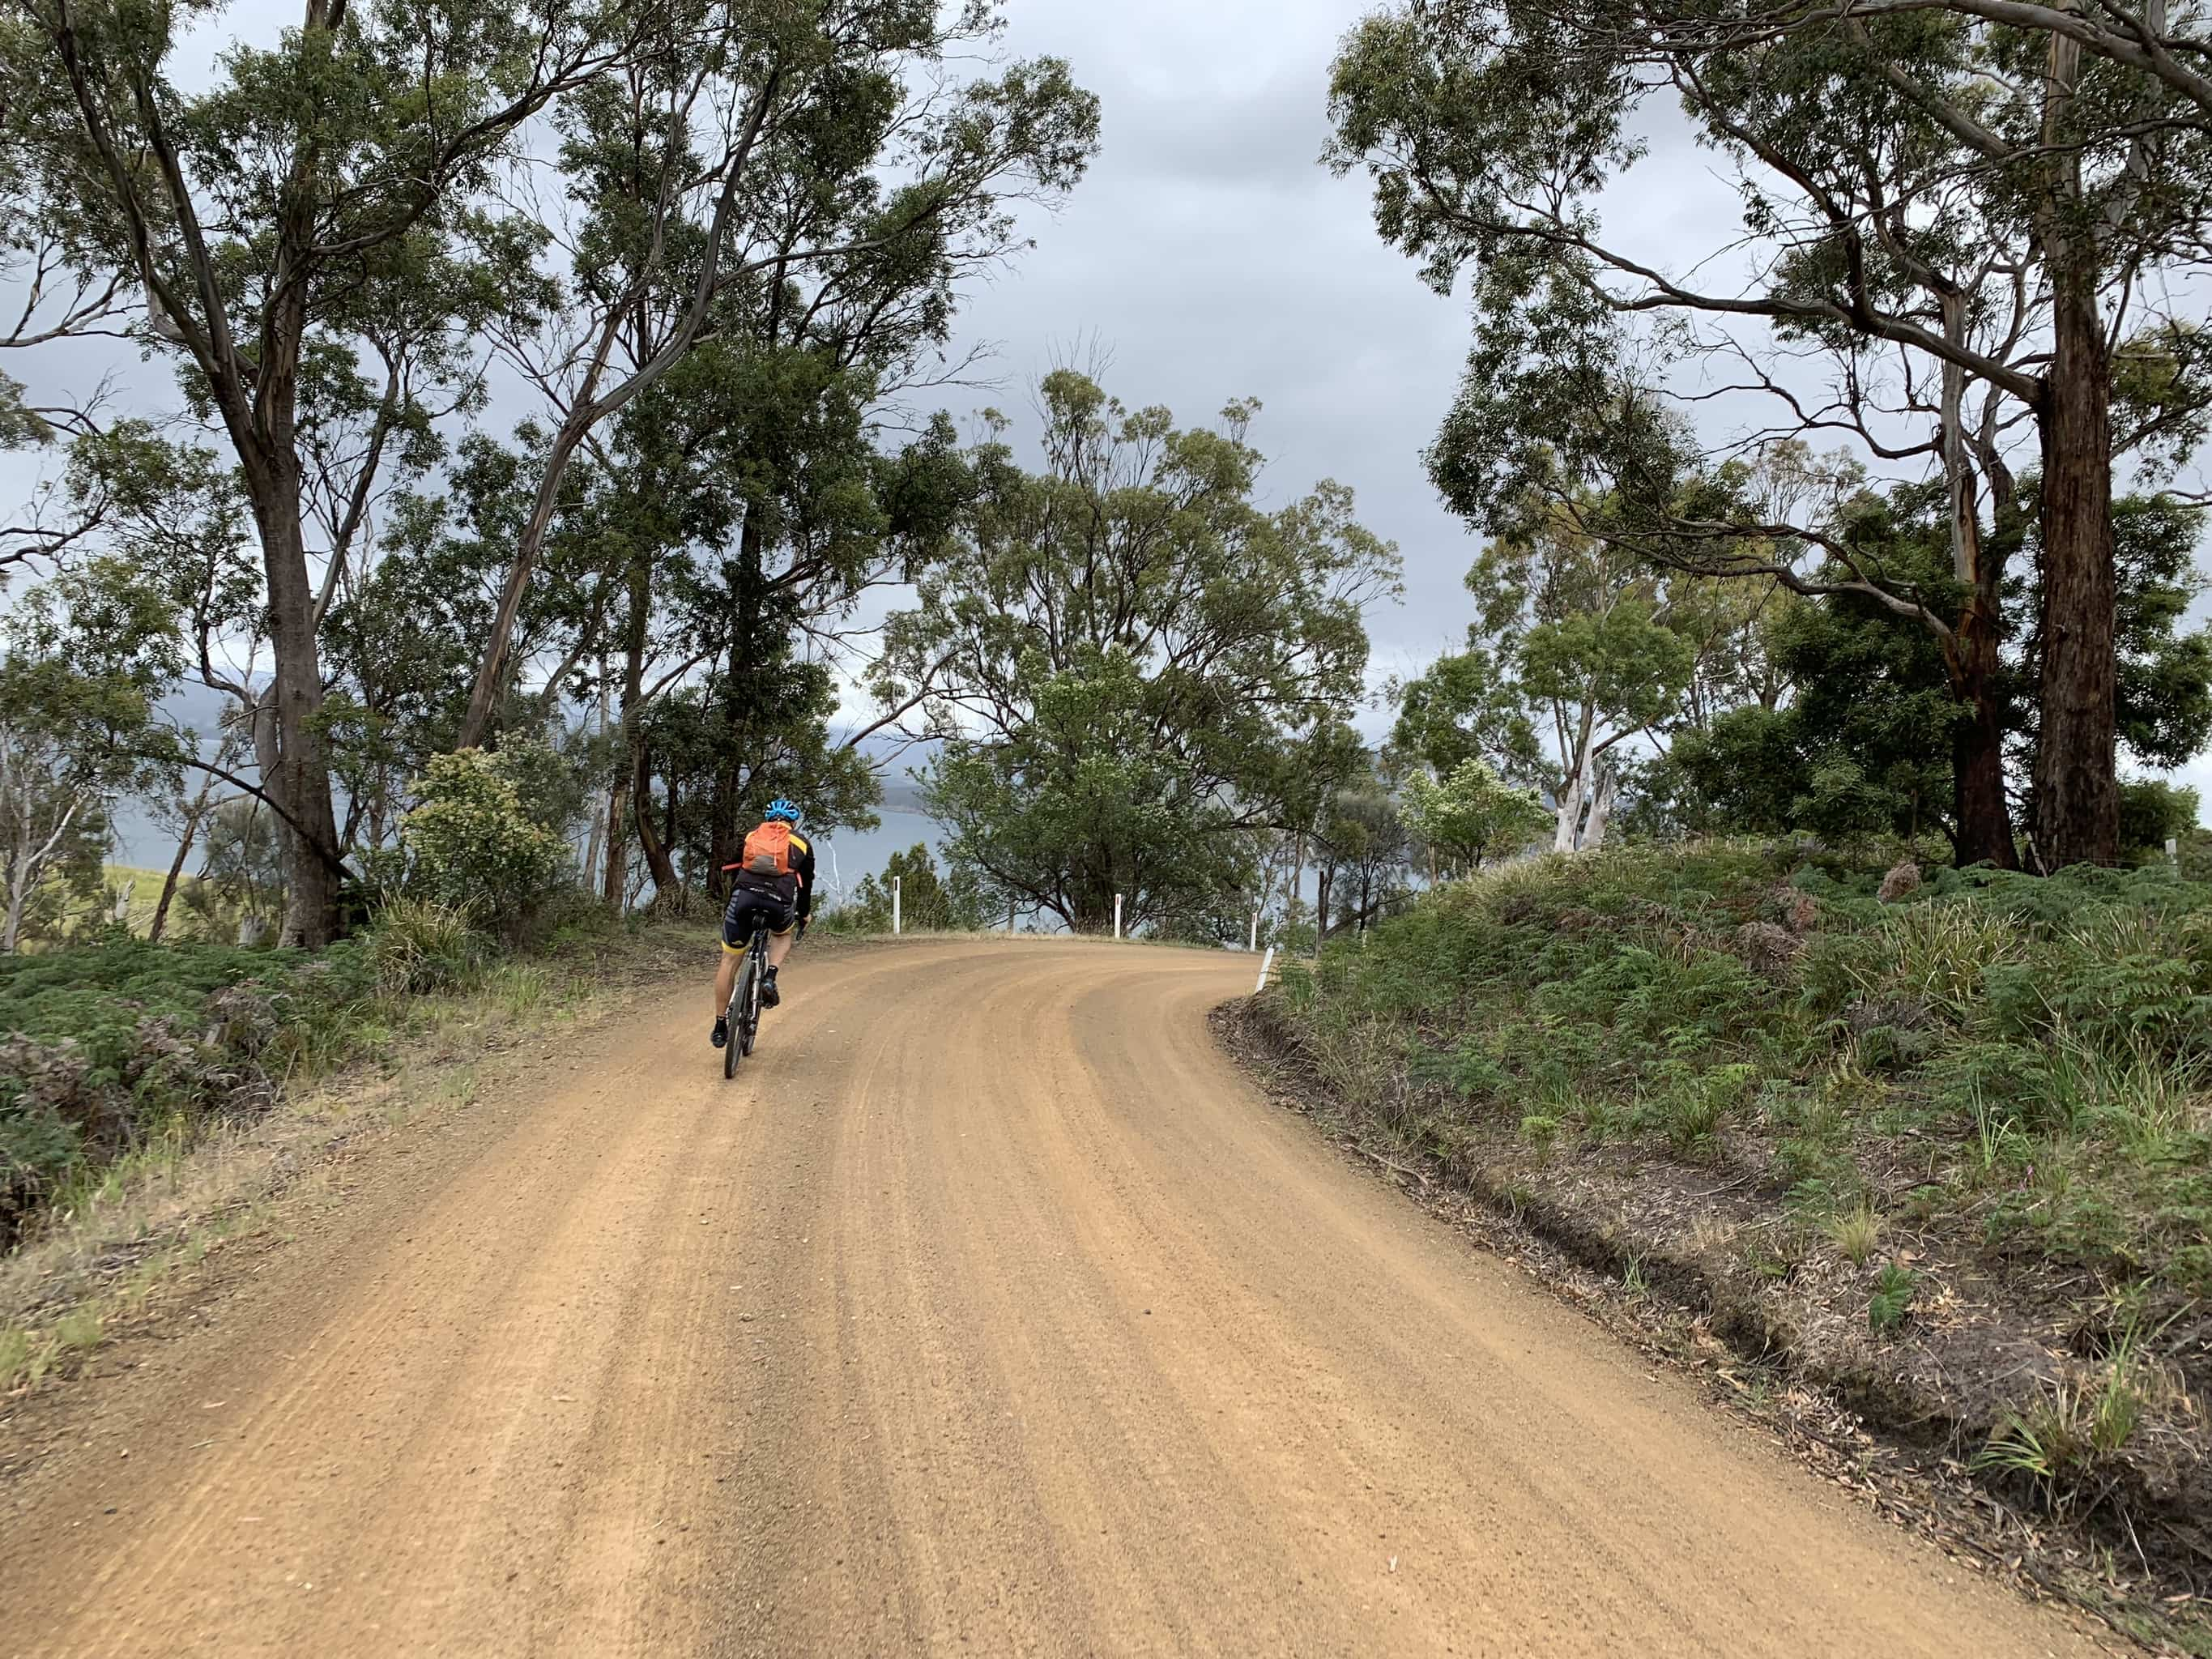 Bike rider on gravel road near Dennes Point on North Bruny Island. Coast in distance.